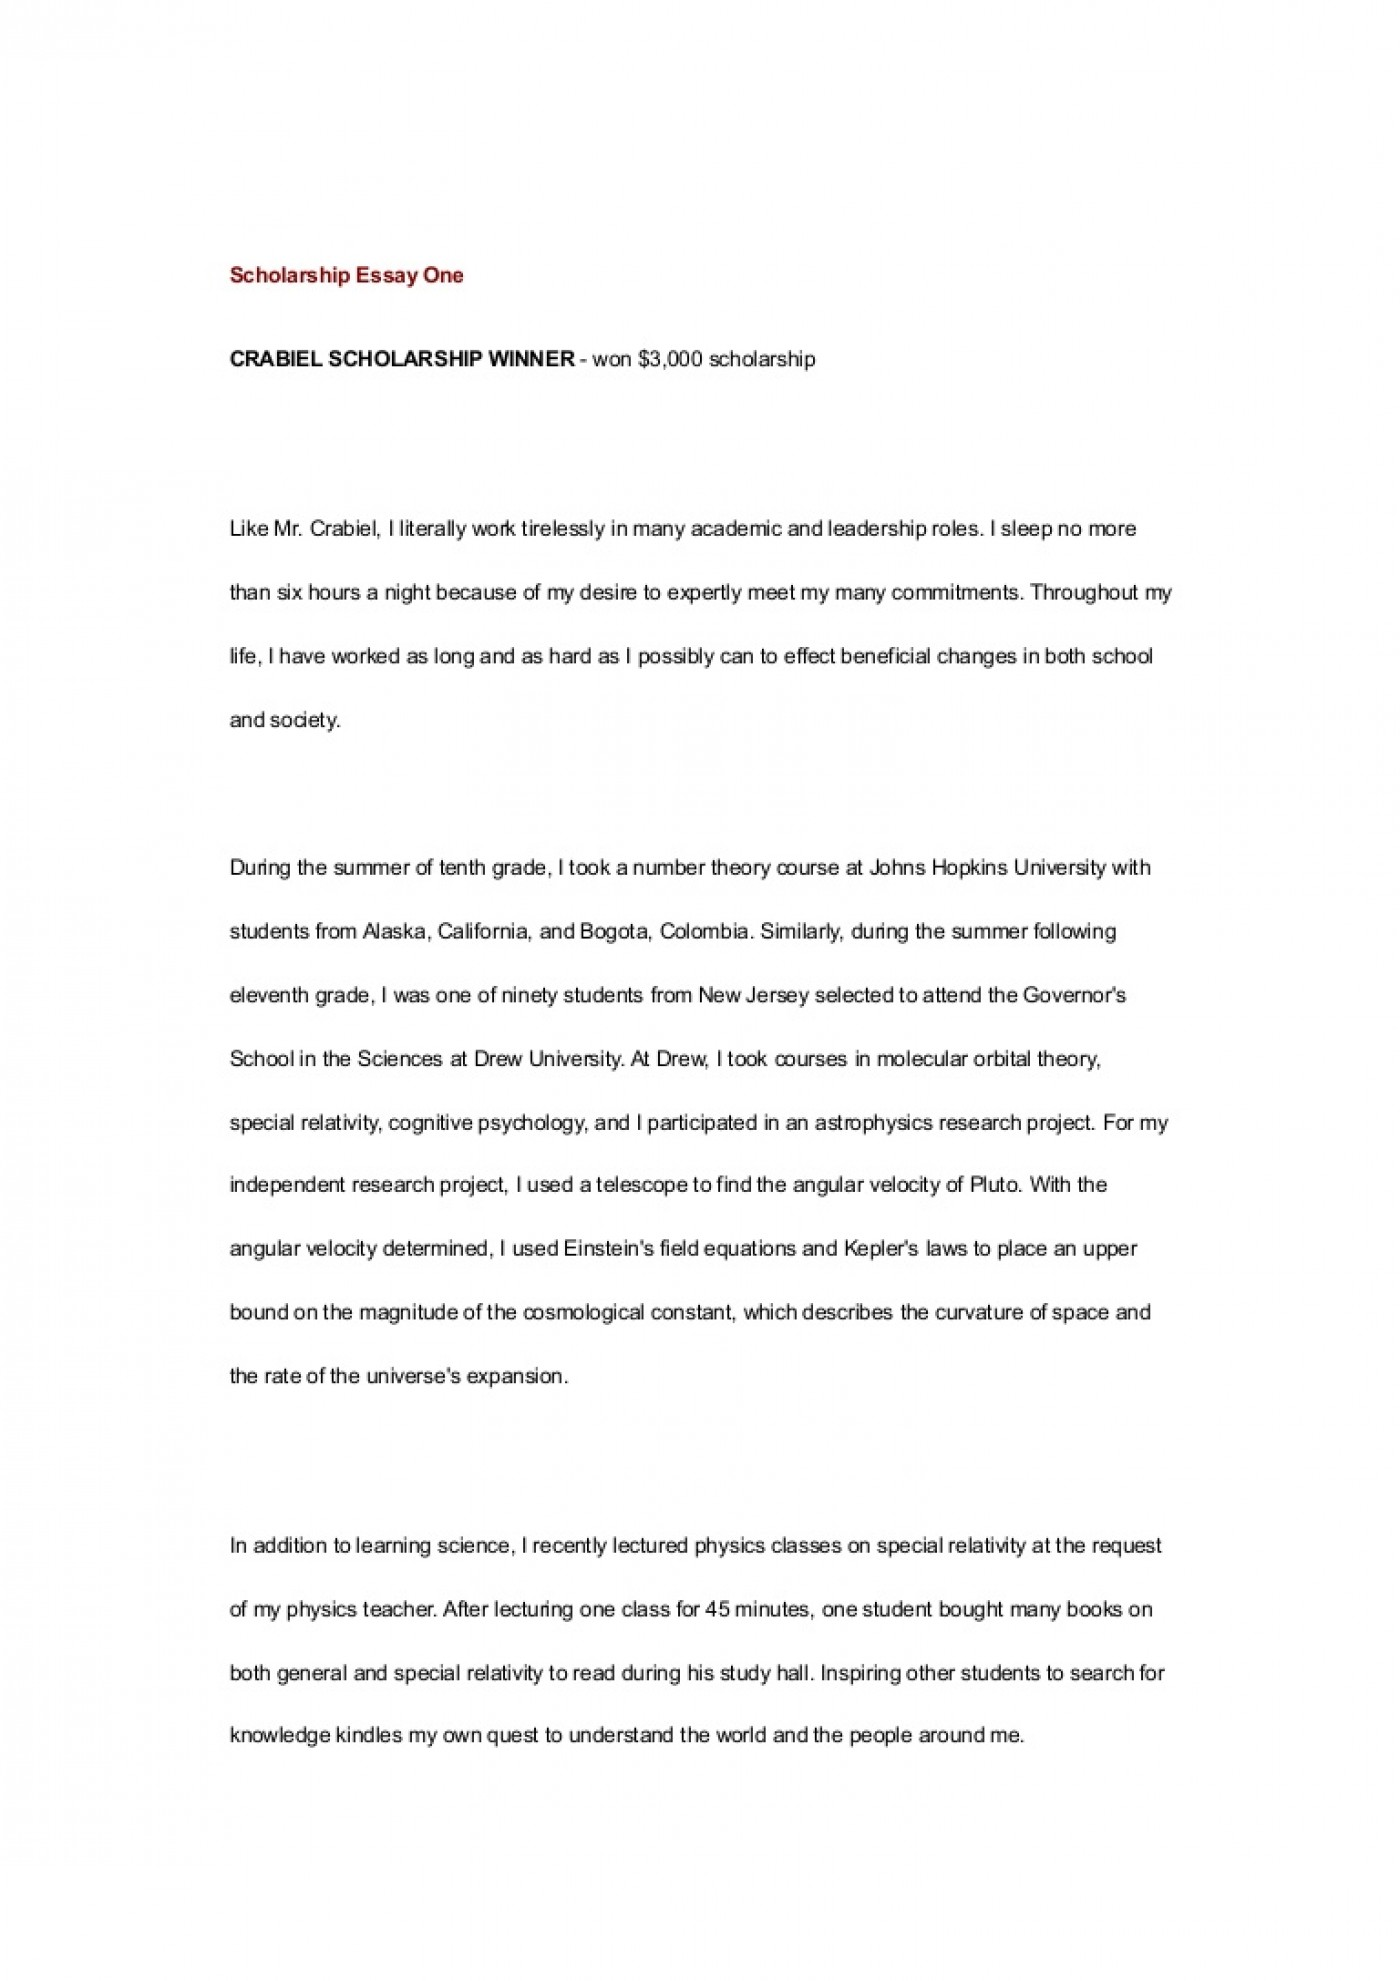 005 Scholarship Essay Examples Example Scholarshipessayone Phpapp01 Thumbnail Impressive Financial Need Pdf Nursing 1400